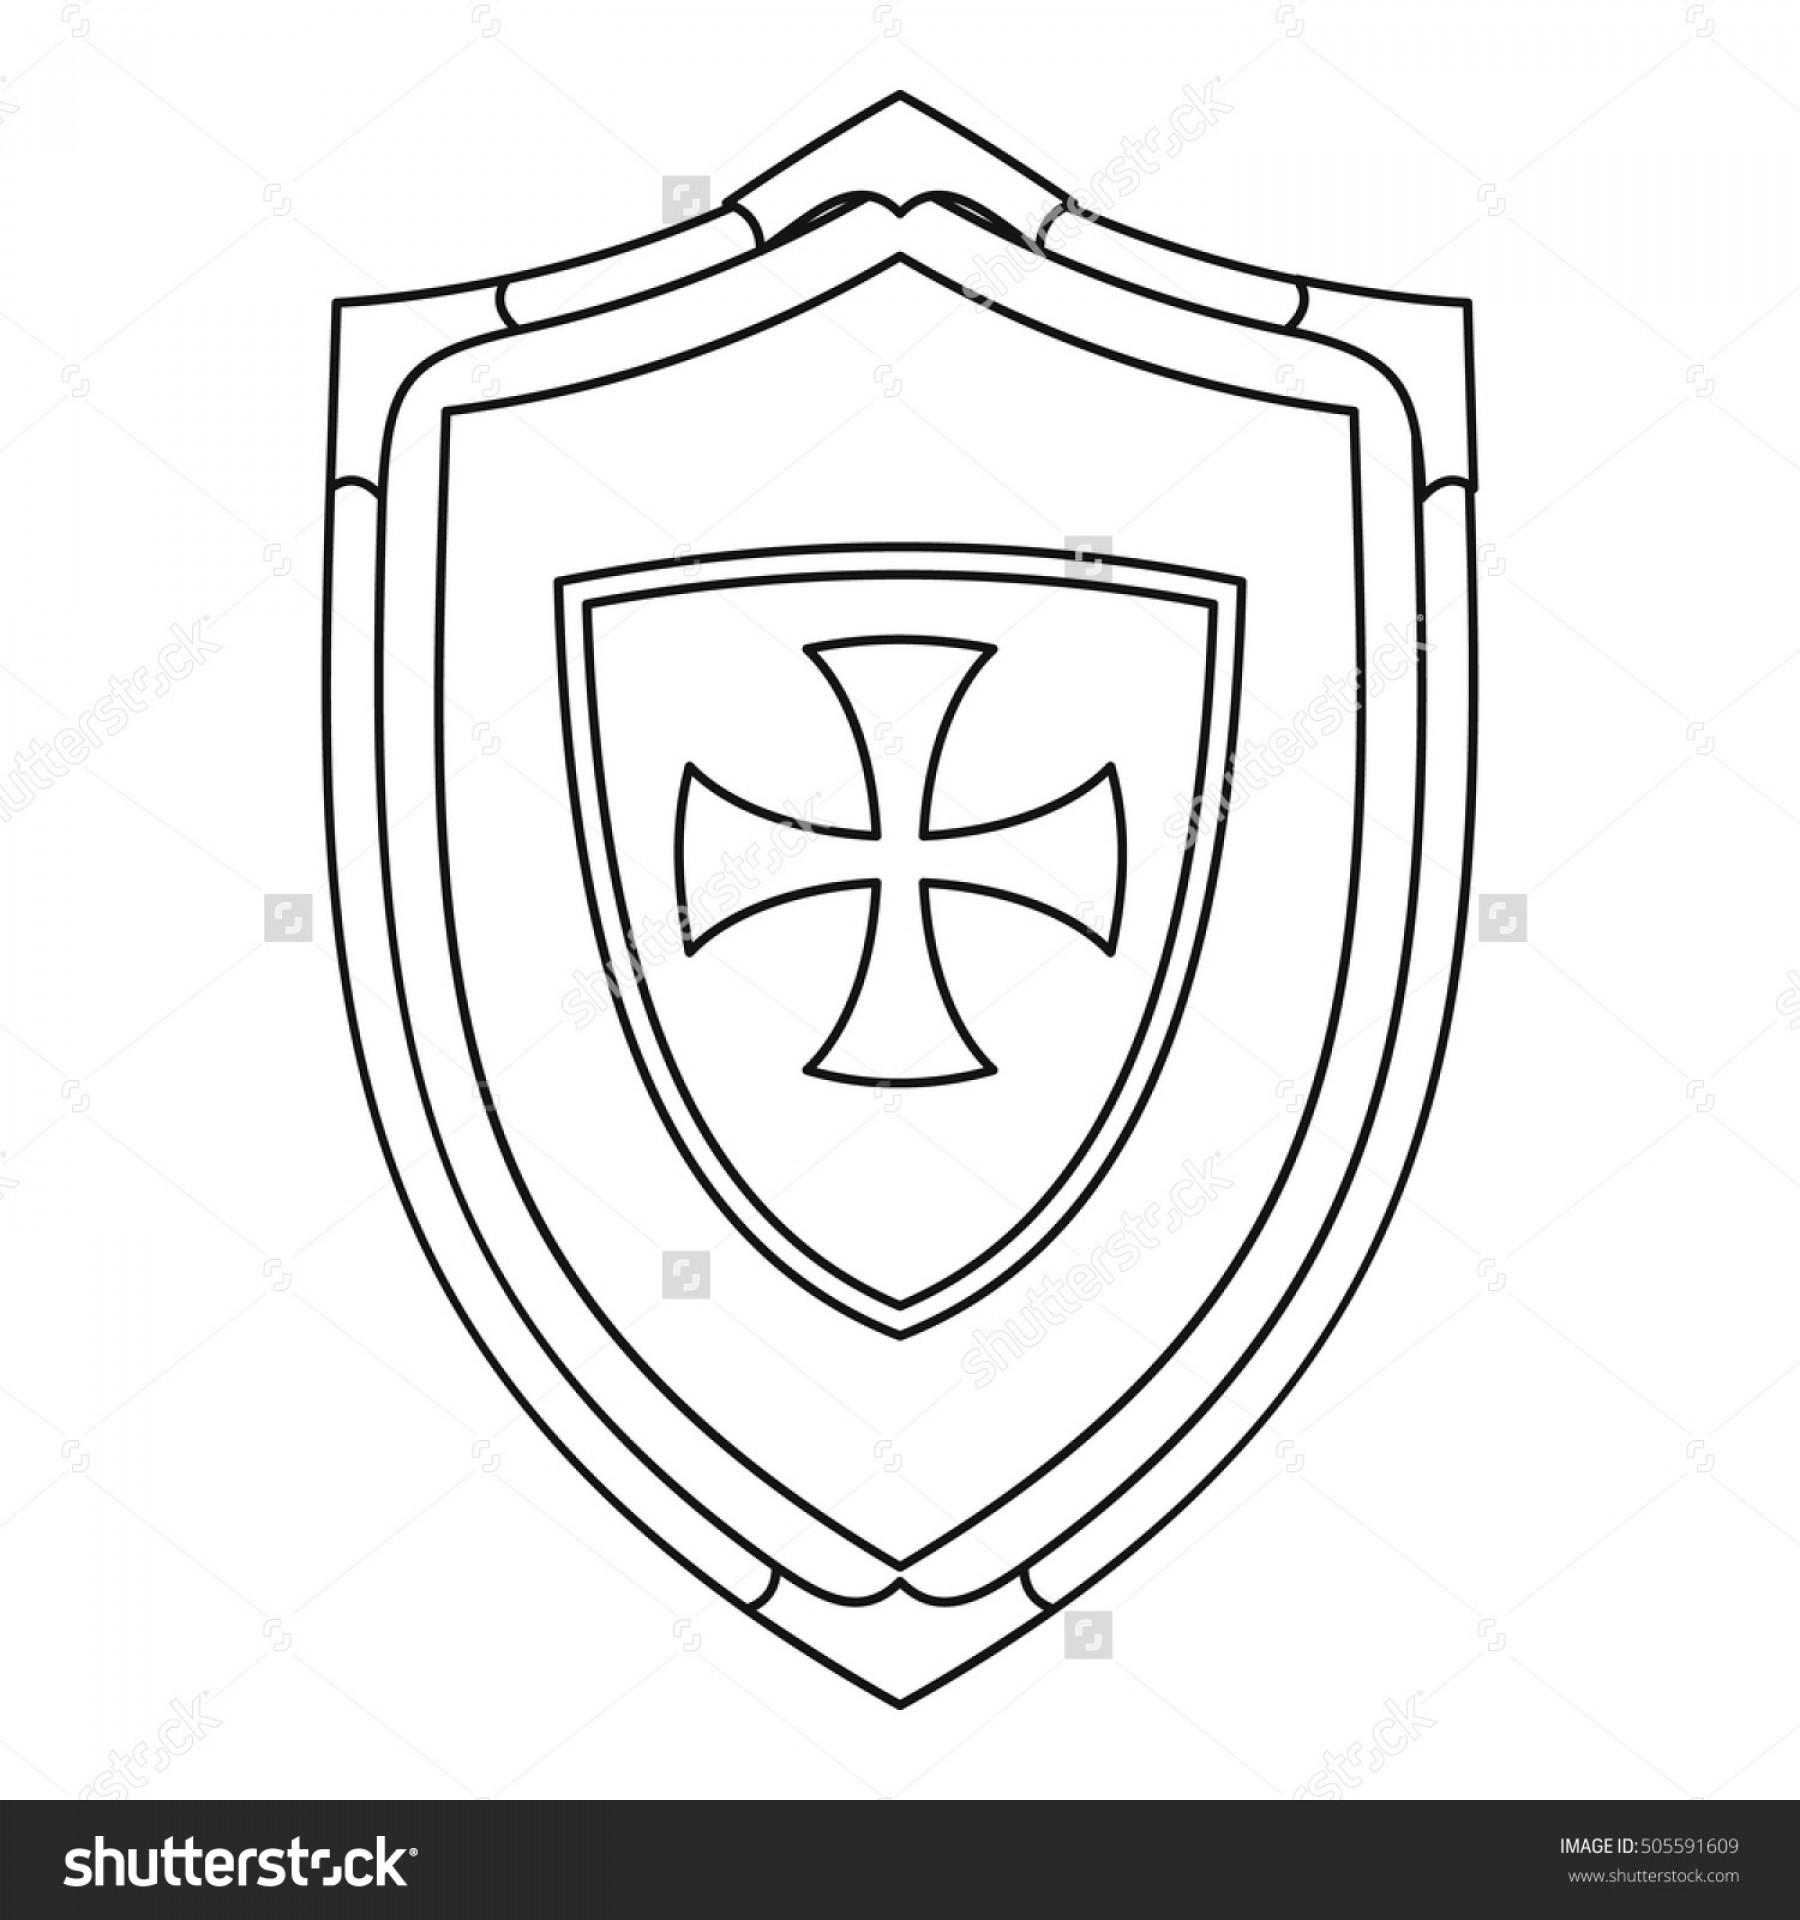 1800x1920 Best Free Hd Shield Cross Icon Outline Illustration Vector Image